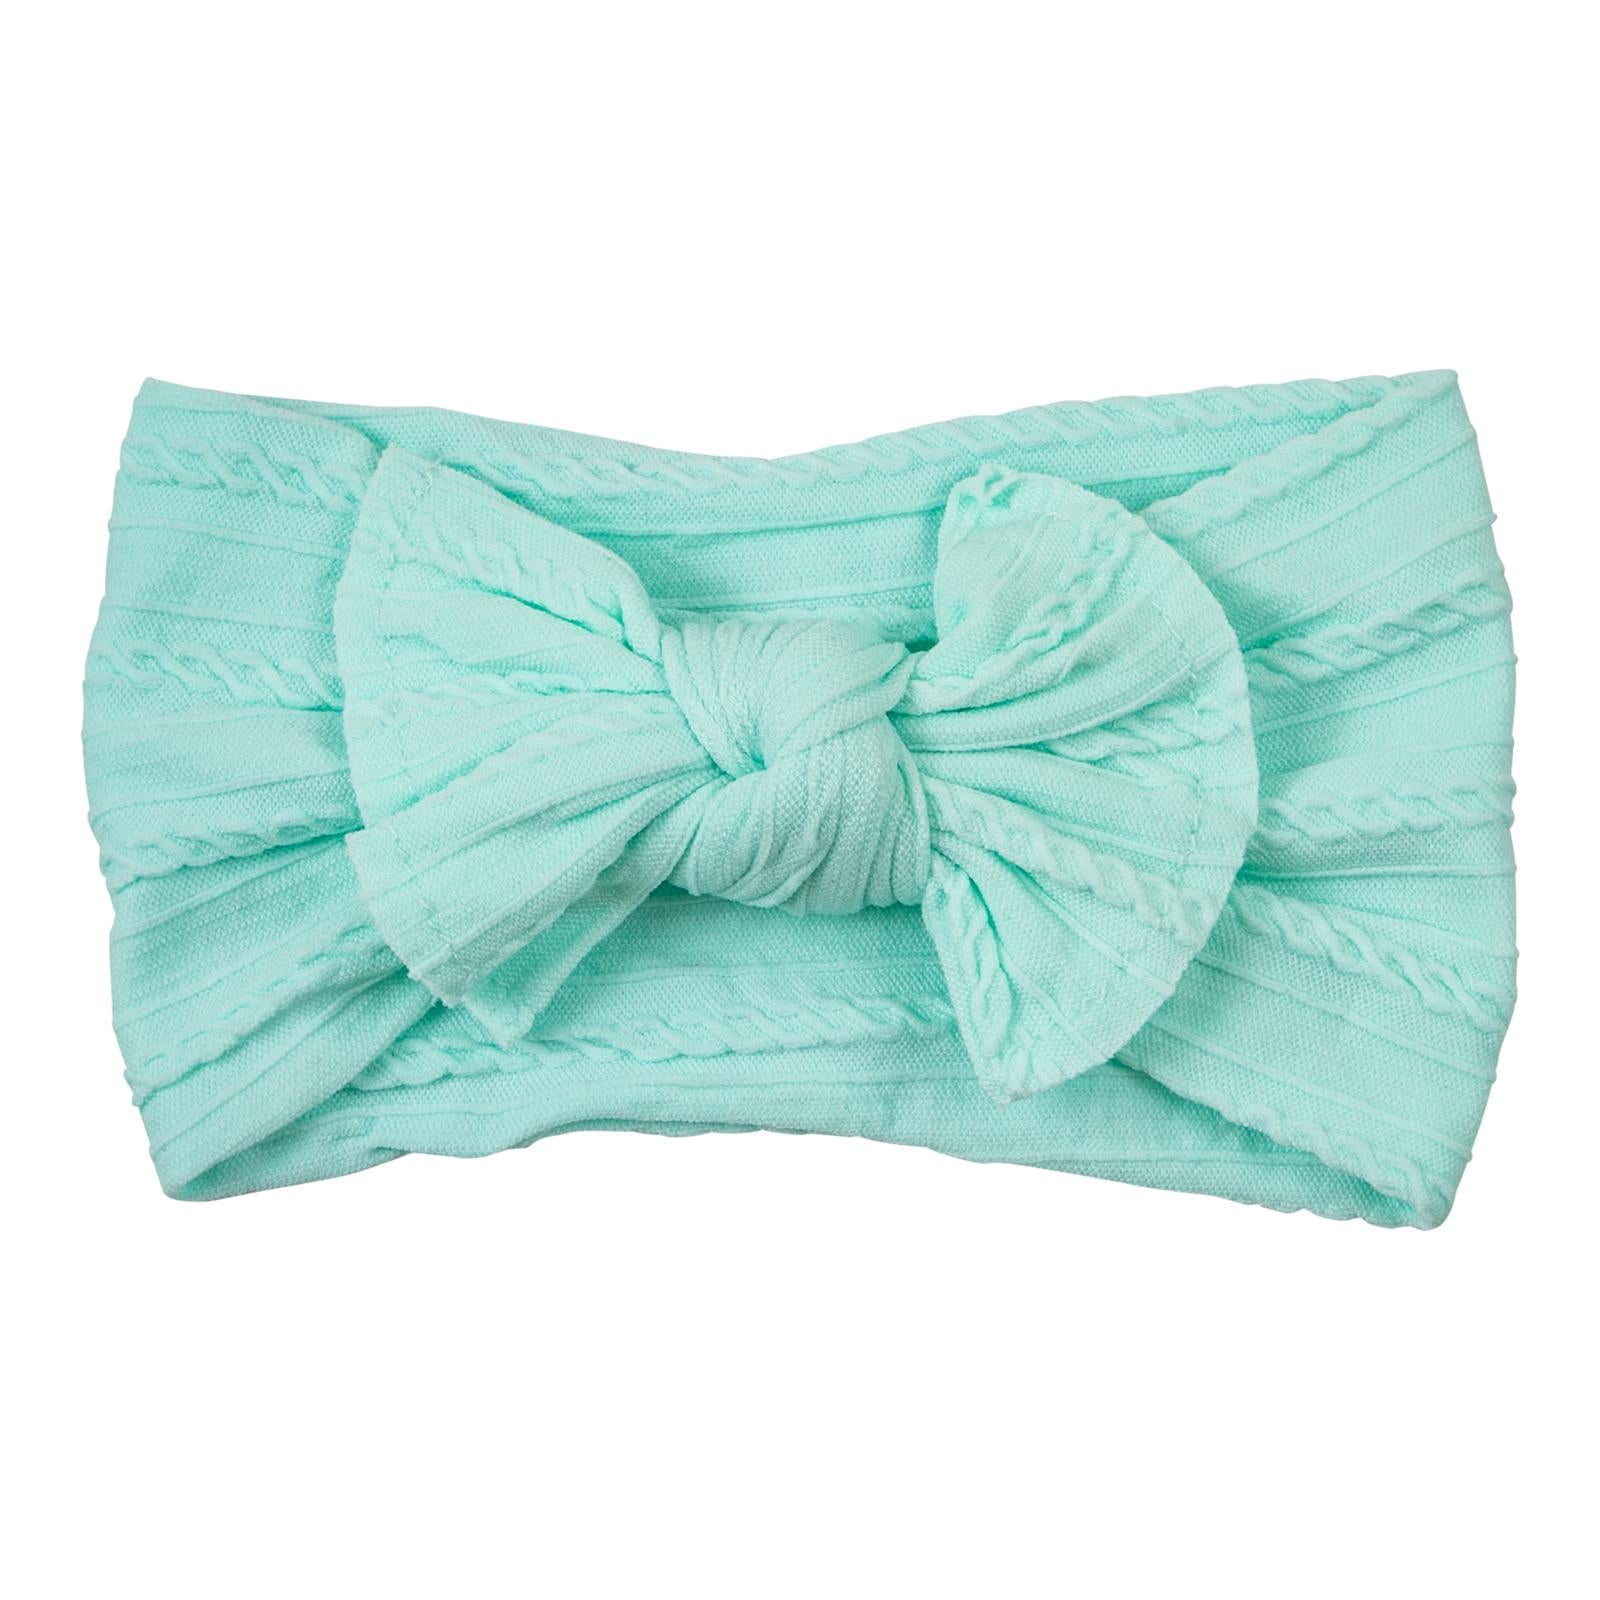 Mint Cable Knit Nylon Headwrap-Mila & Rose ®